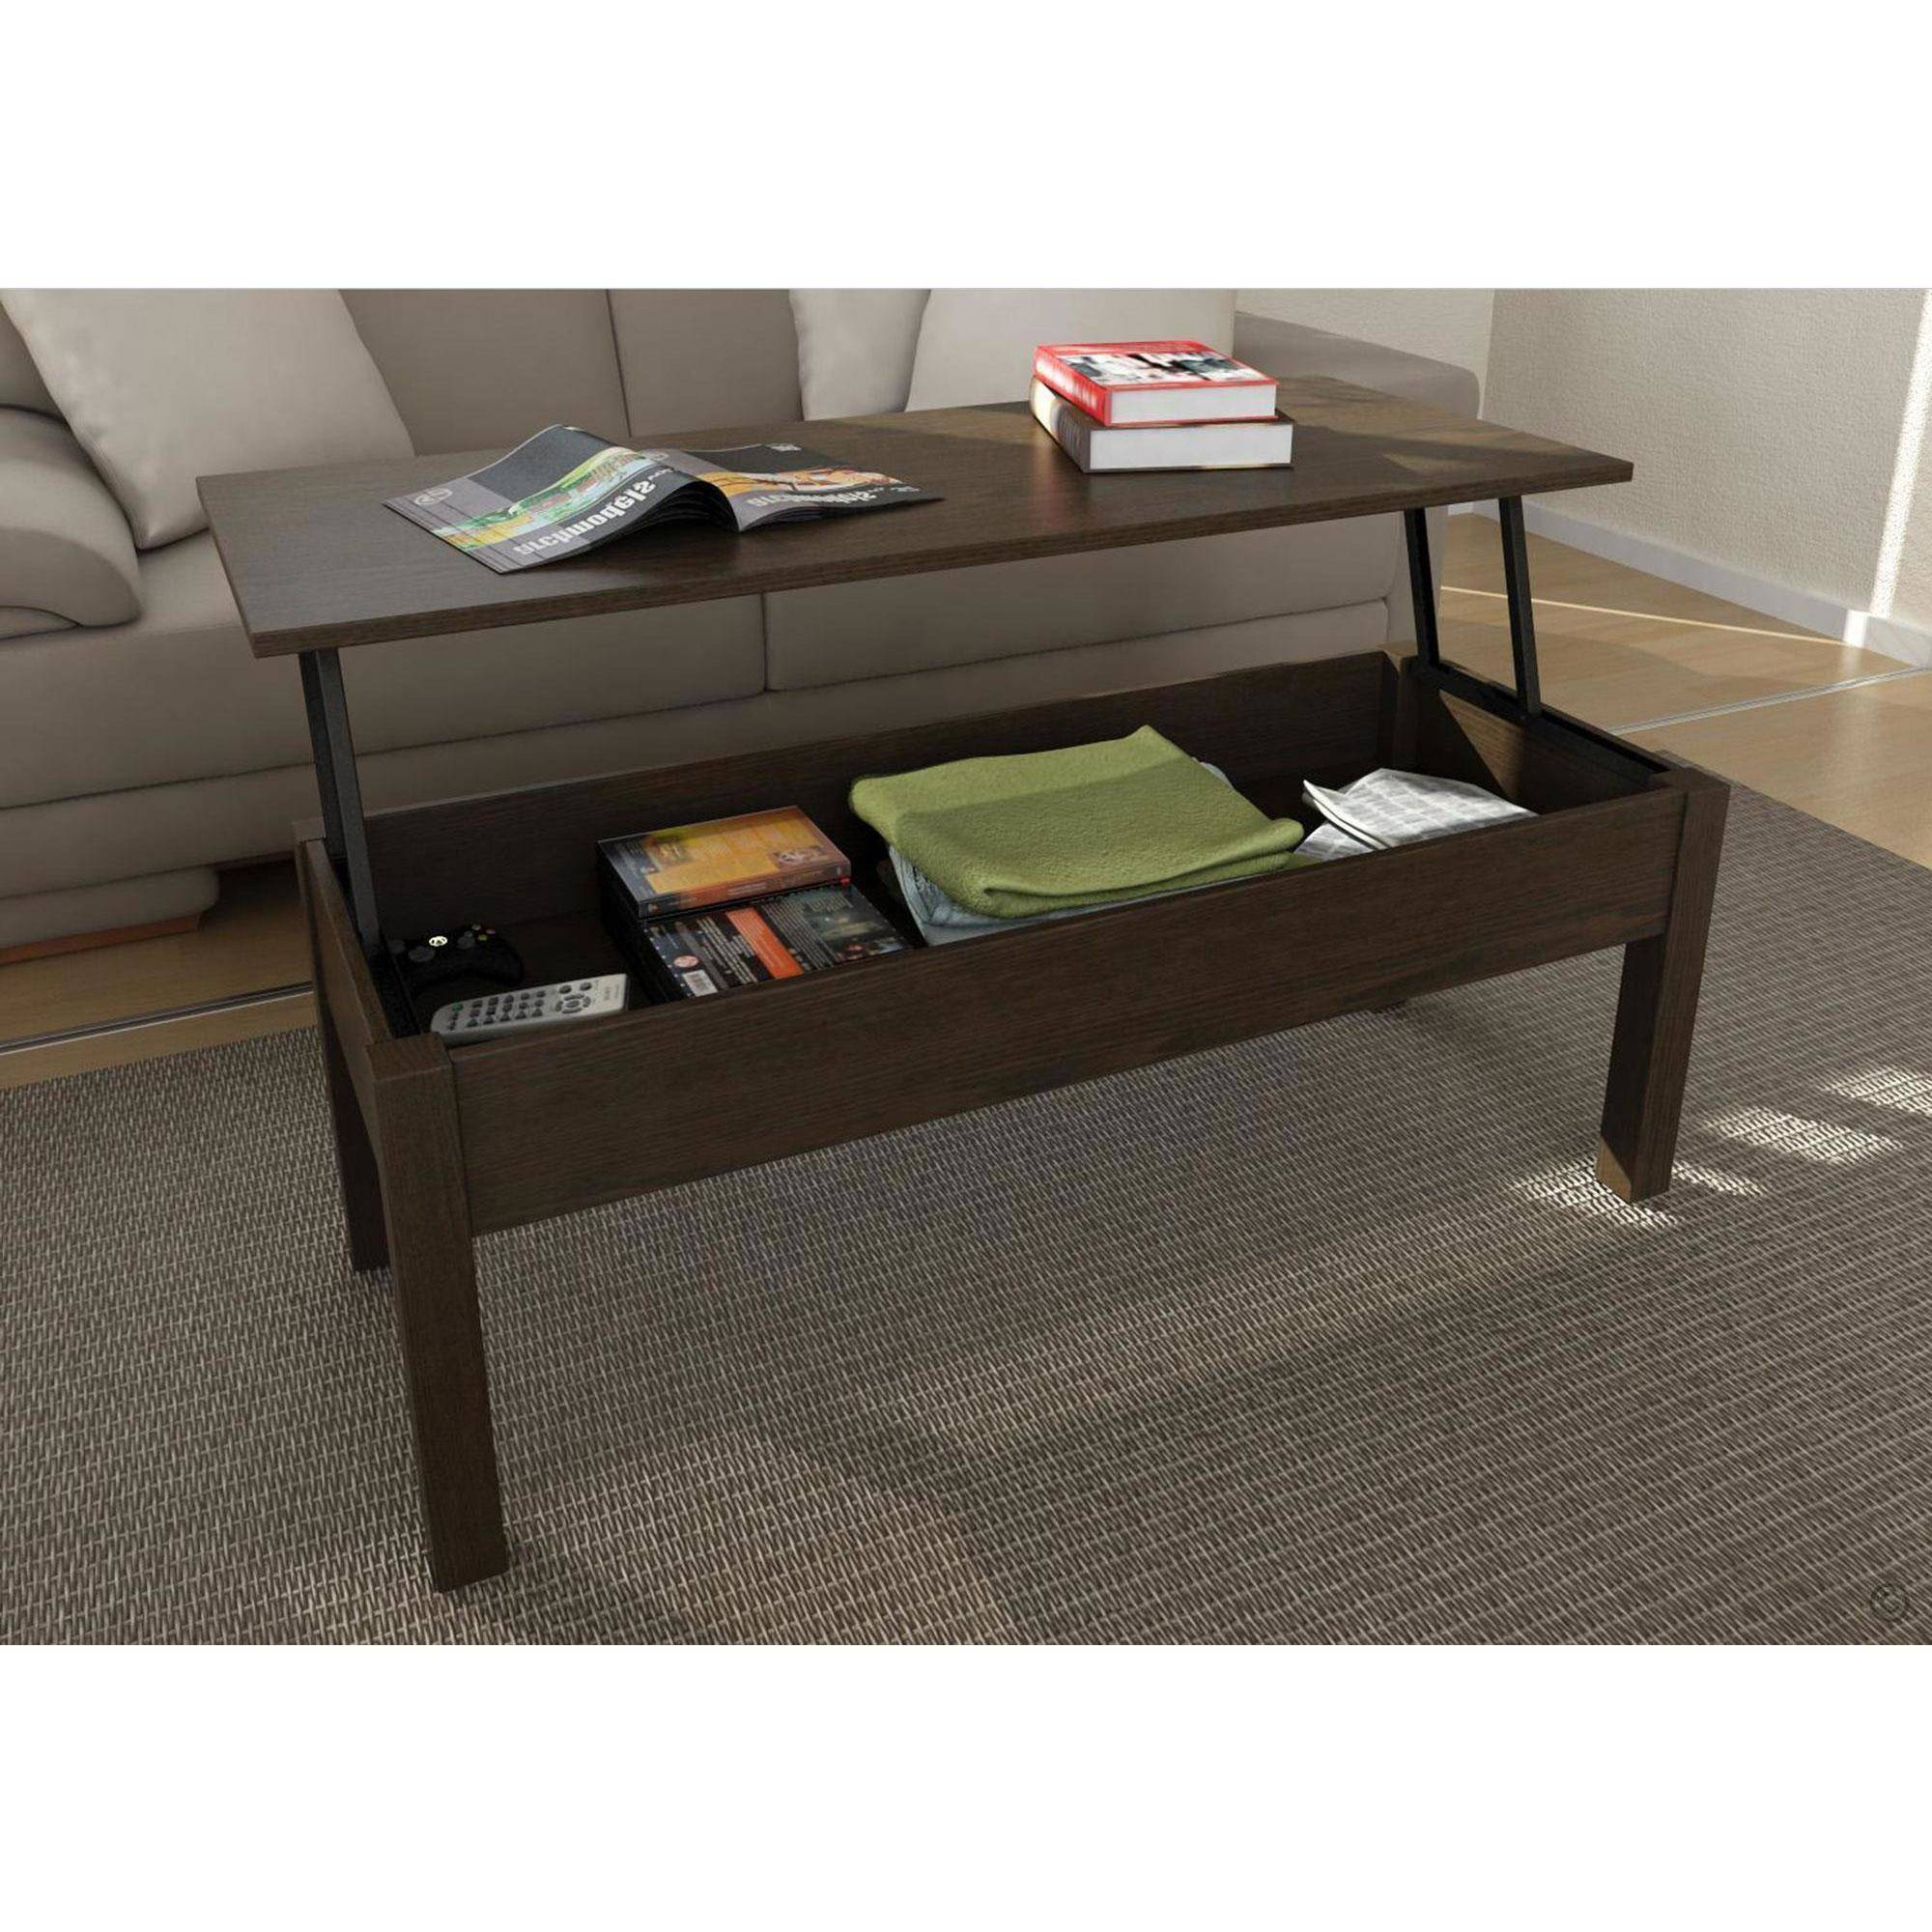 Mainstays lift top coffee table multiple colors walmart geotapseo Image collections